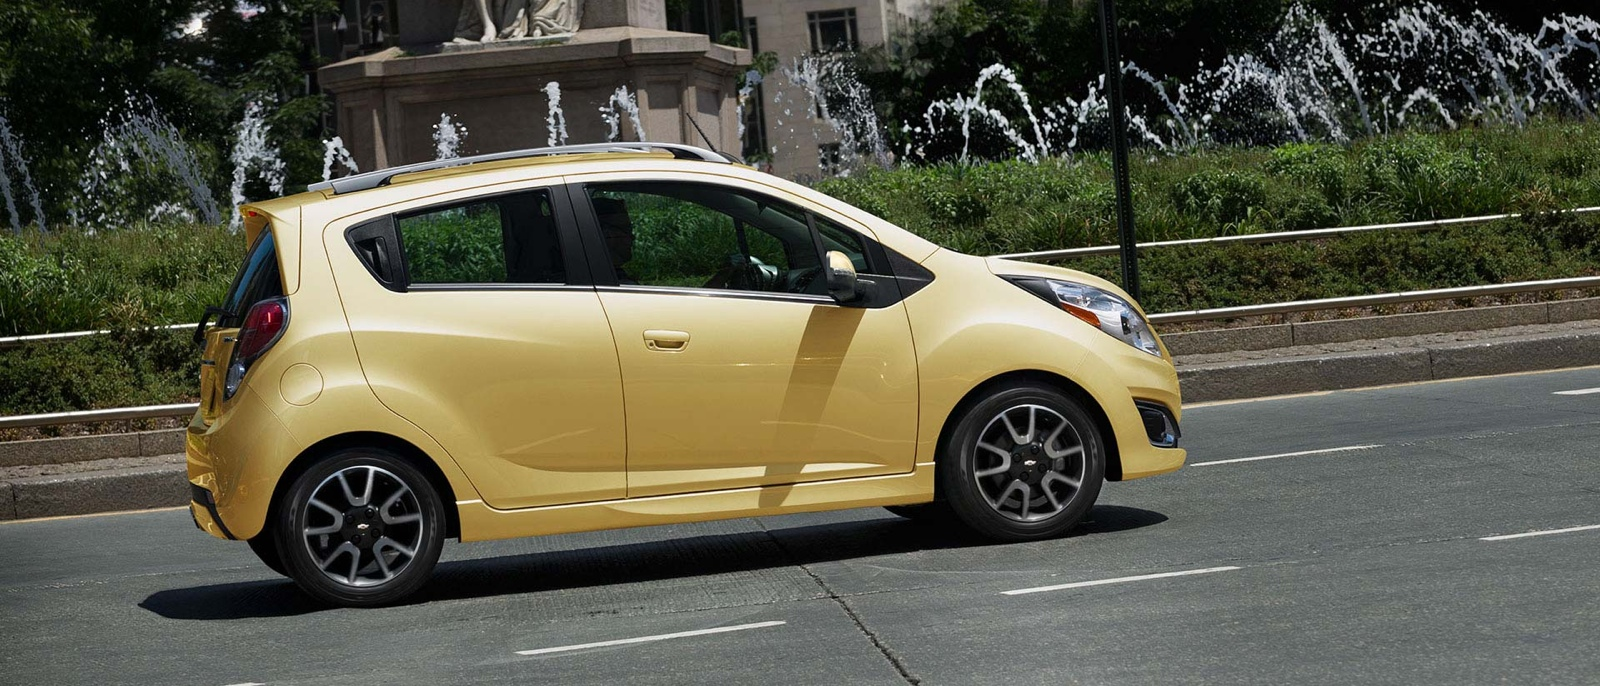 2015 Chevrolet Spark profile